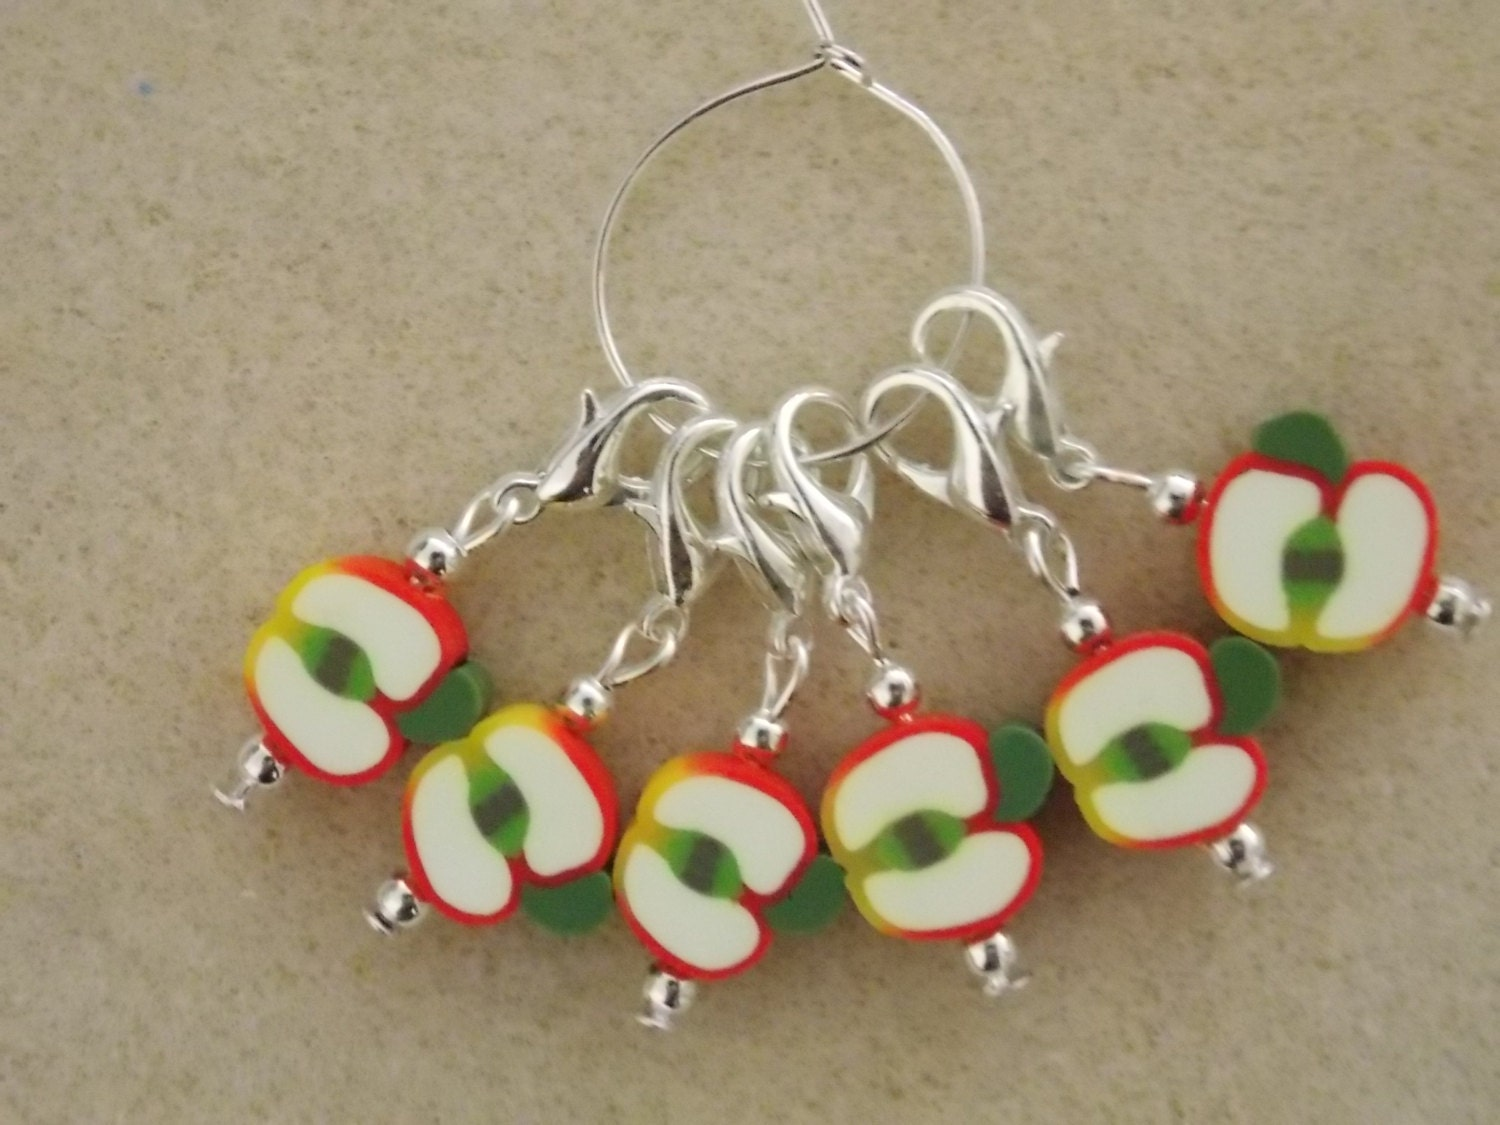 Crochet Stitch Markers : Crochet Stitch Markers Apples Set of 6 by 3wildoranges on Etsy